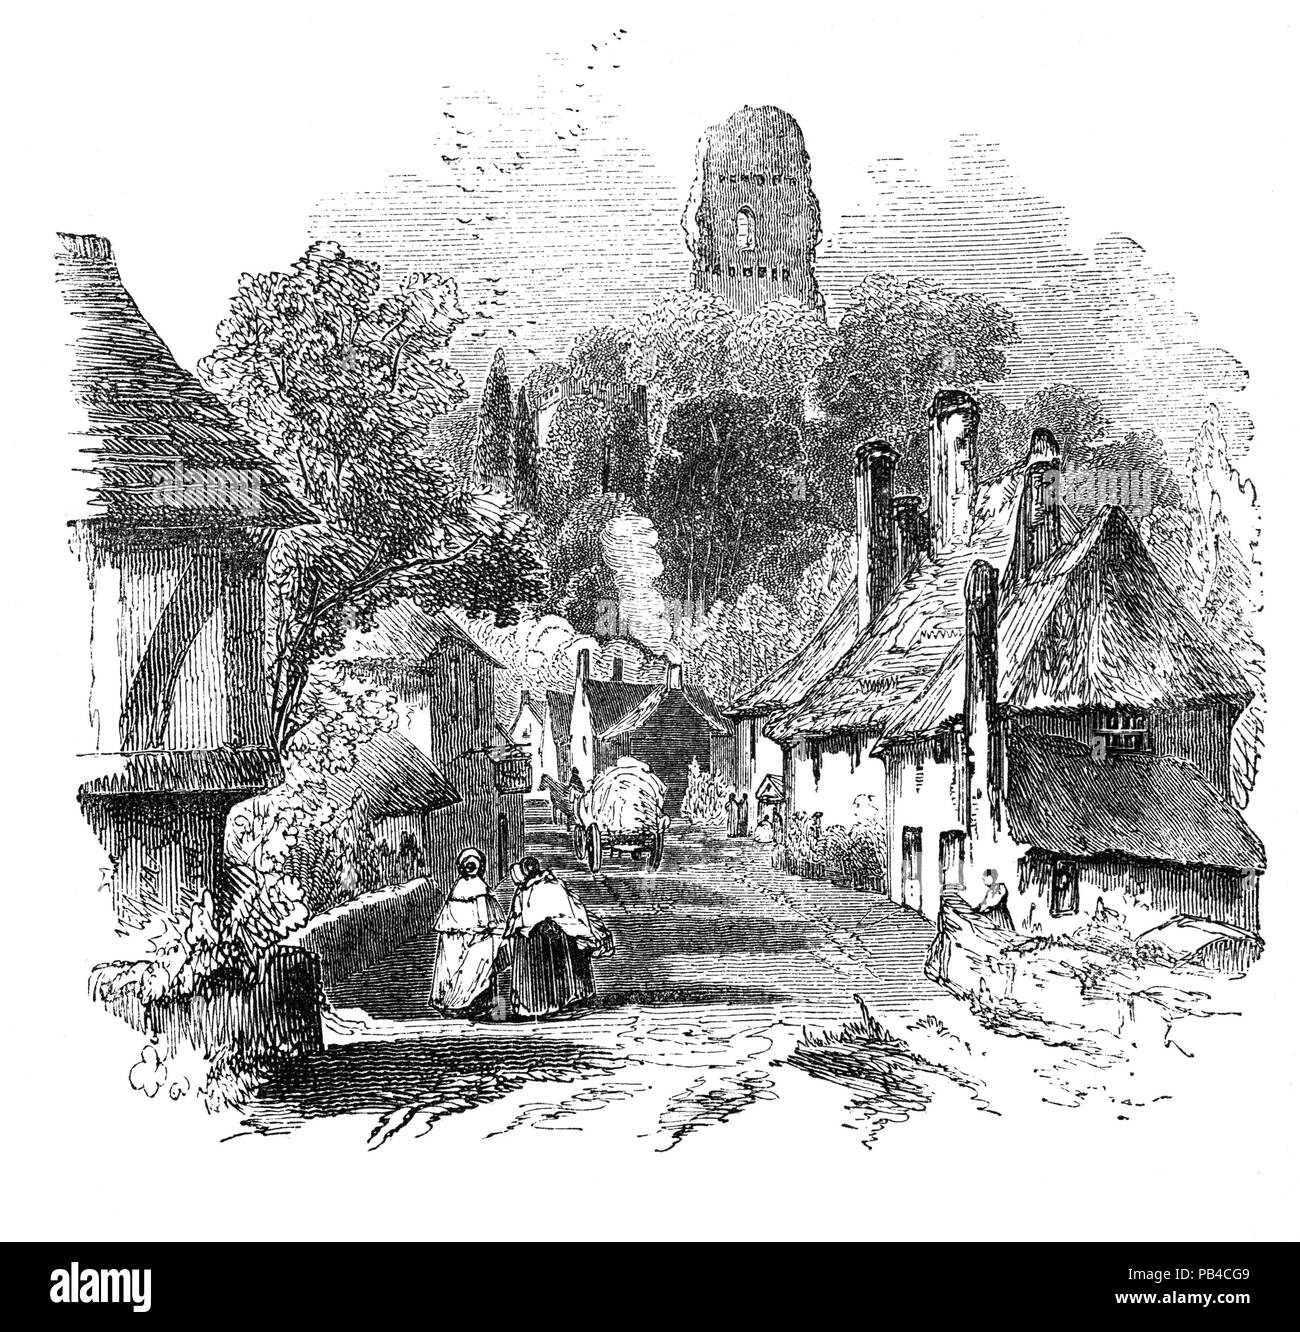 The ruins of Bramber Castle in the village of Bramber, West Sussex, England overlooking the River Adur. It was constructedabout 1070, along with the Norman church, on a natural mound. Except for a period of confiscation during the reign of King John, the castle remained in the ownership of the de Braose family until the male line died out in 1326. Little is known of Bramber Castle's history. Records dating from the Civil War mention a 'skirmish' fought in the village in about 1642. Stock Photo